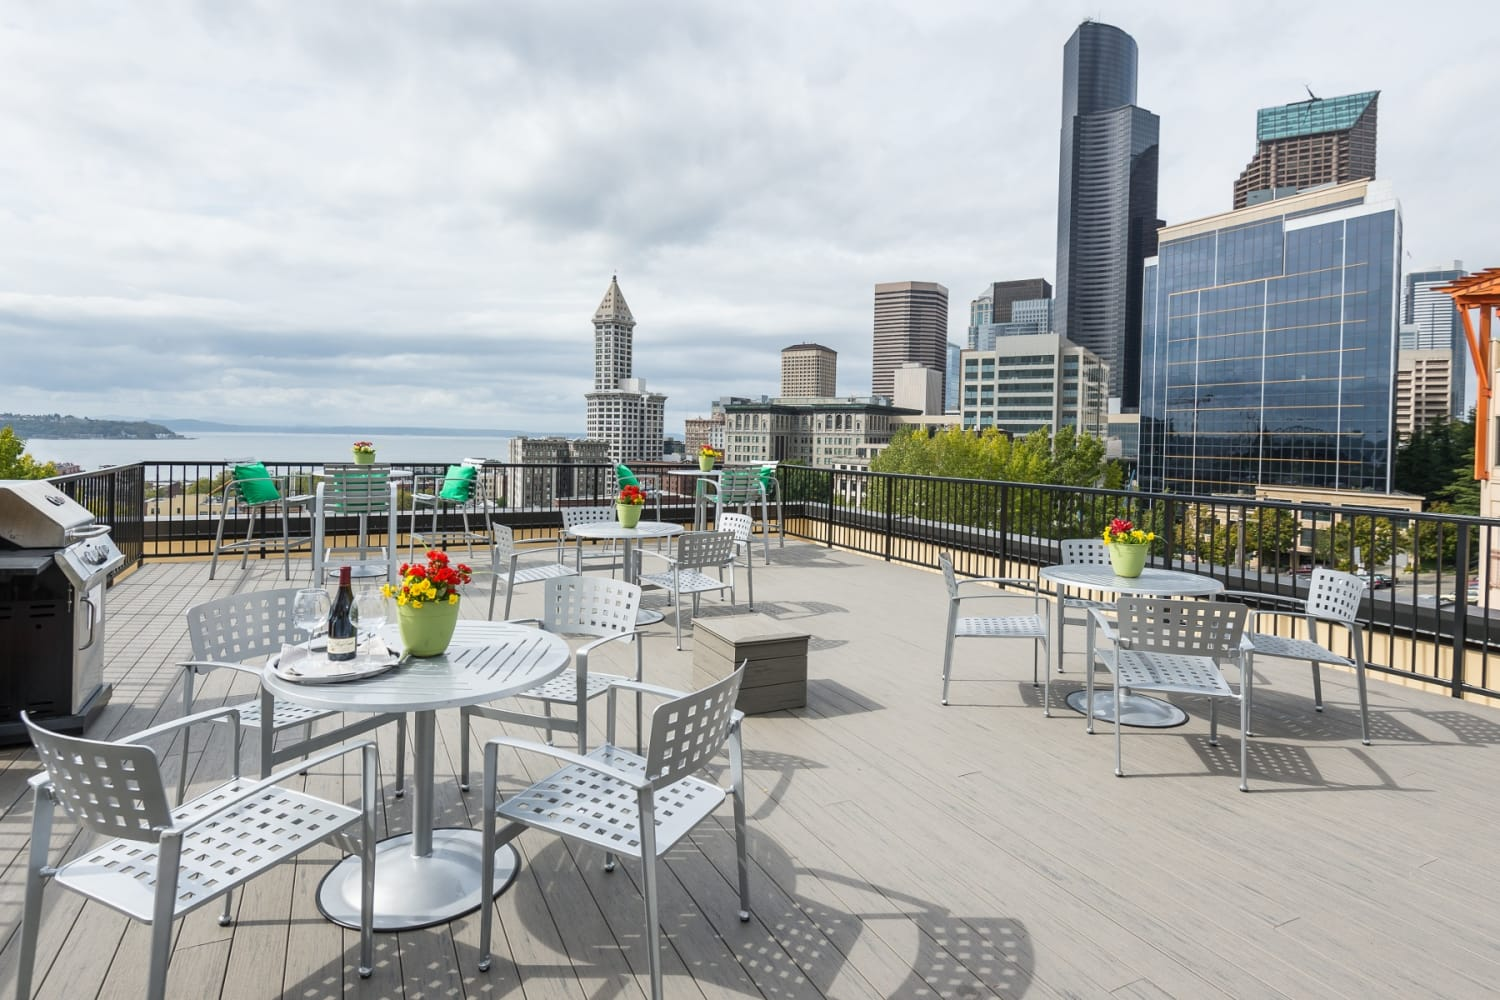 Rooftop views at Metropolitan Park Apartments in Seattle, Washington